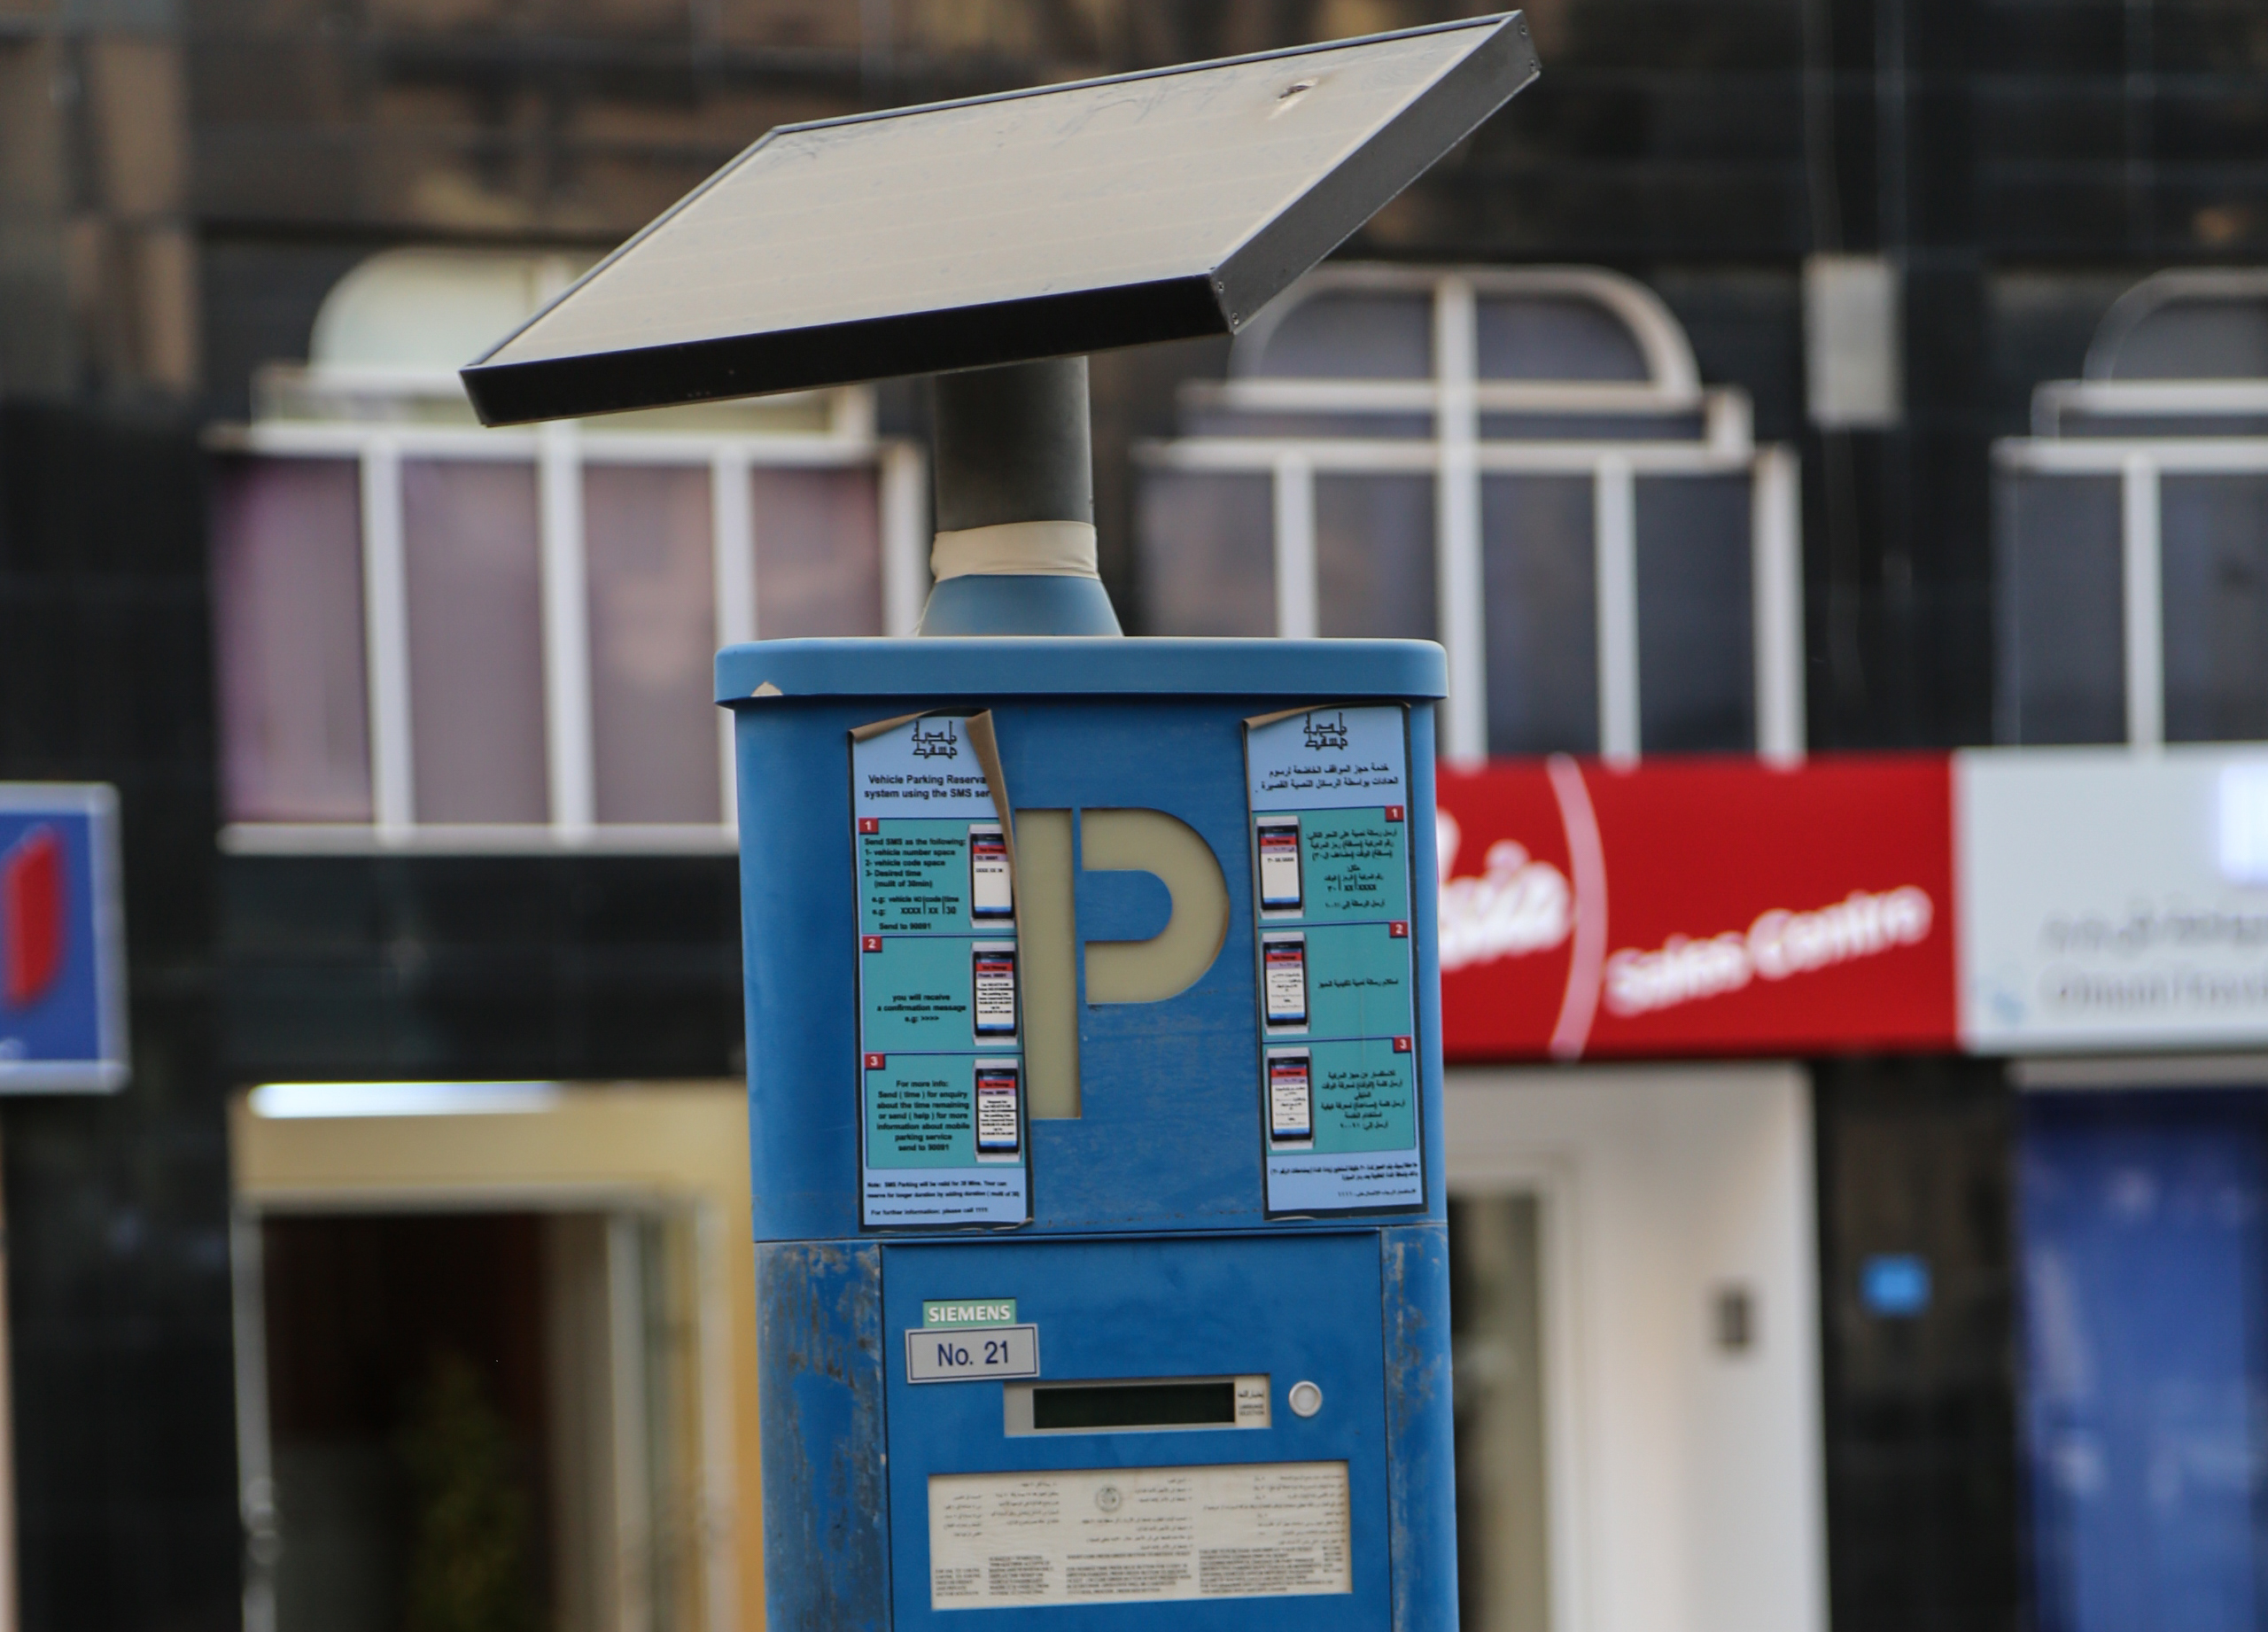 Oman traffic: New parking meters to be activated soon in Muscat